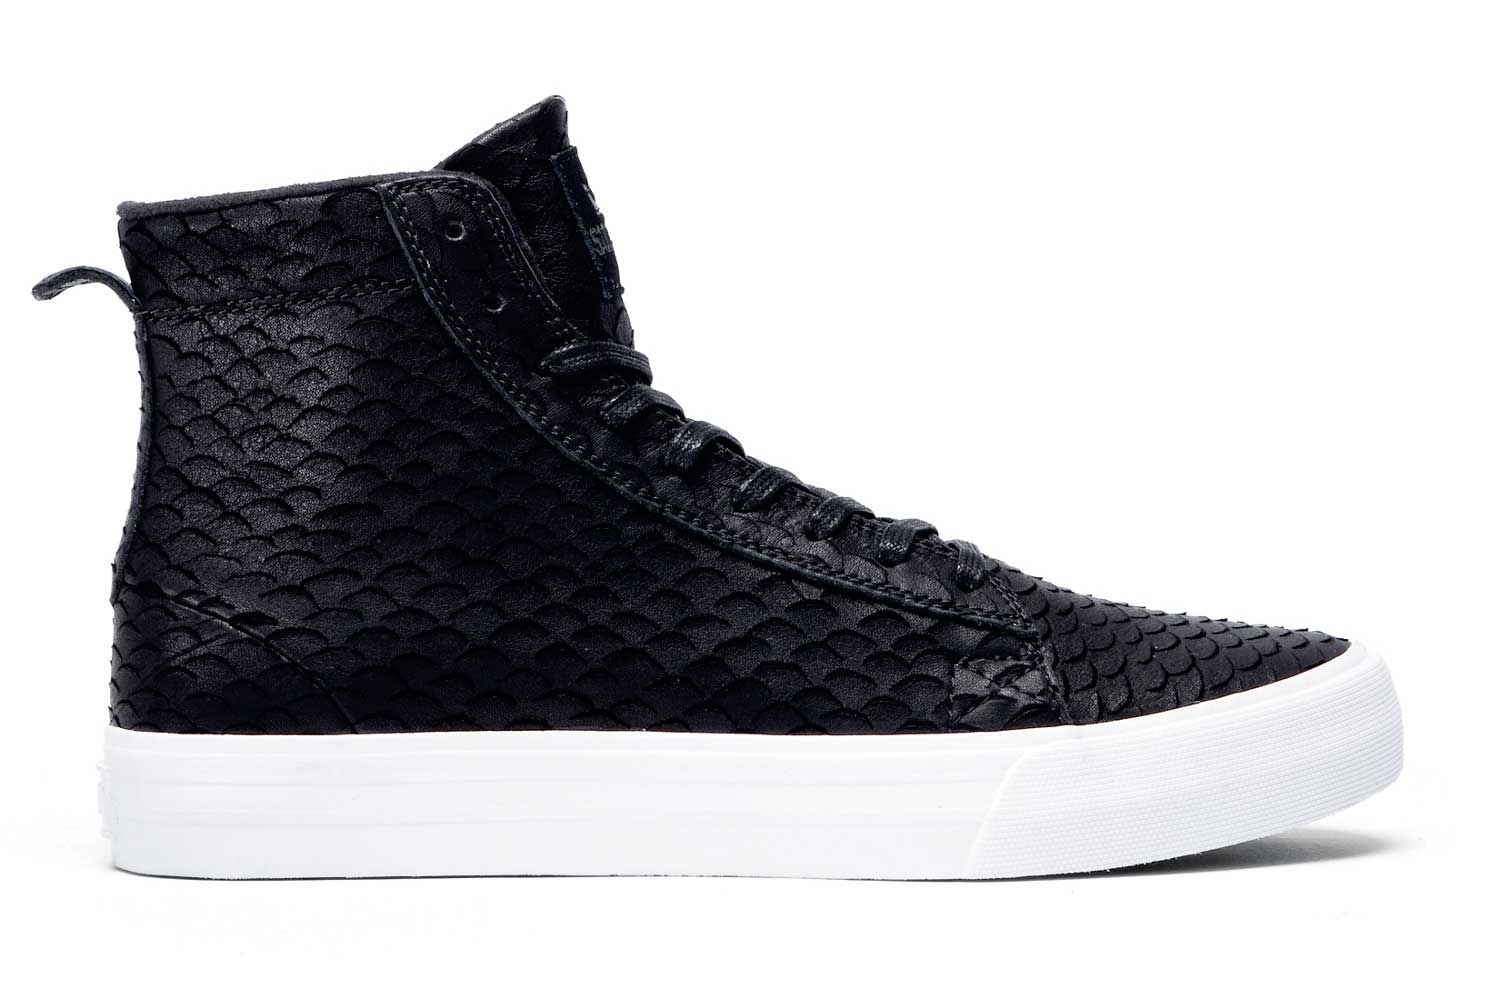 jordan shoes low top black and white photographers cheap cruises